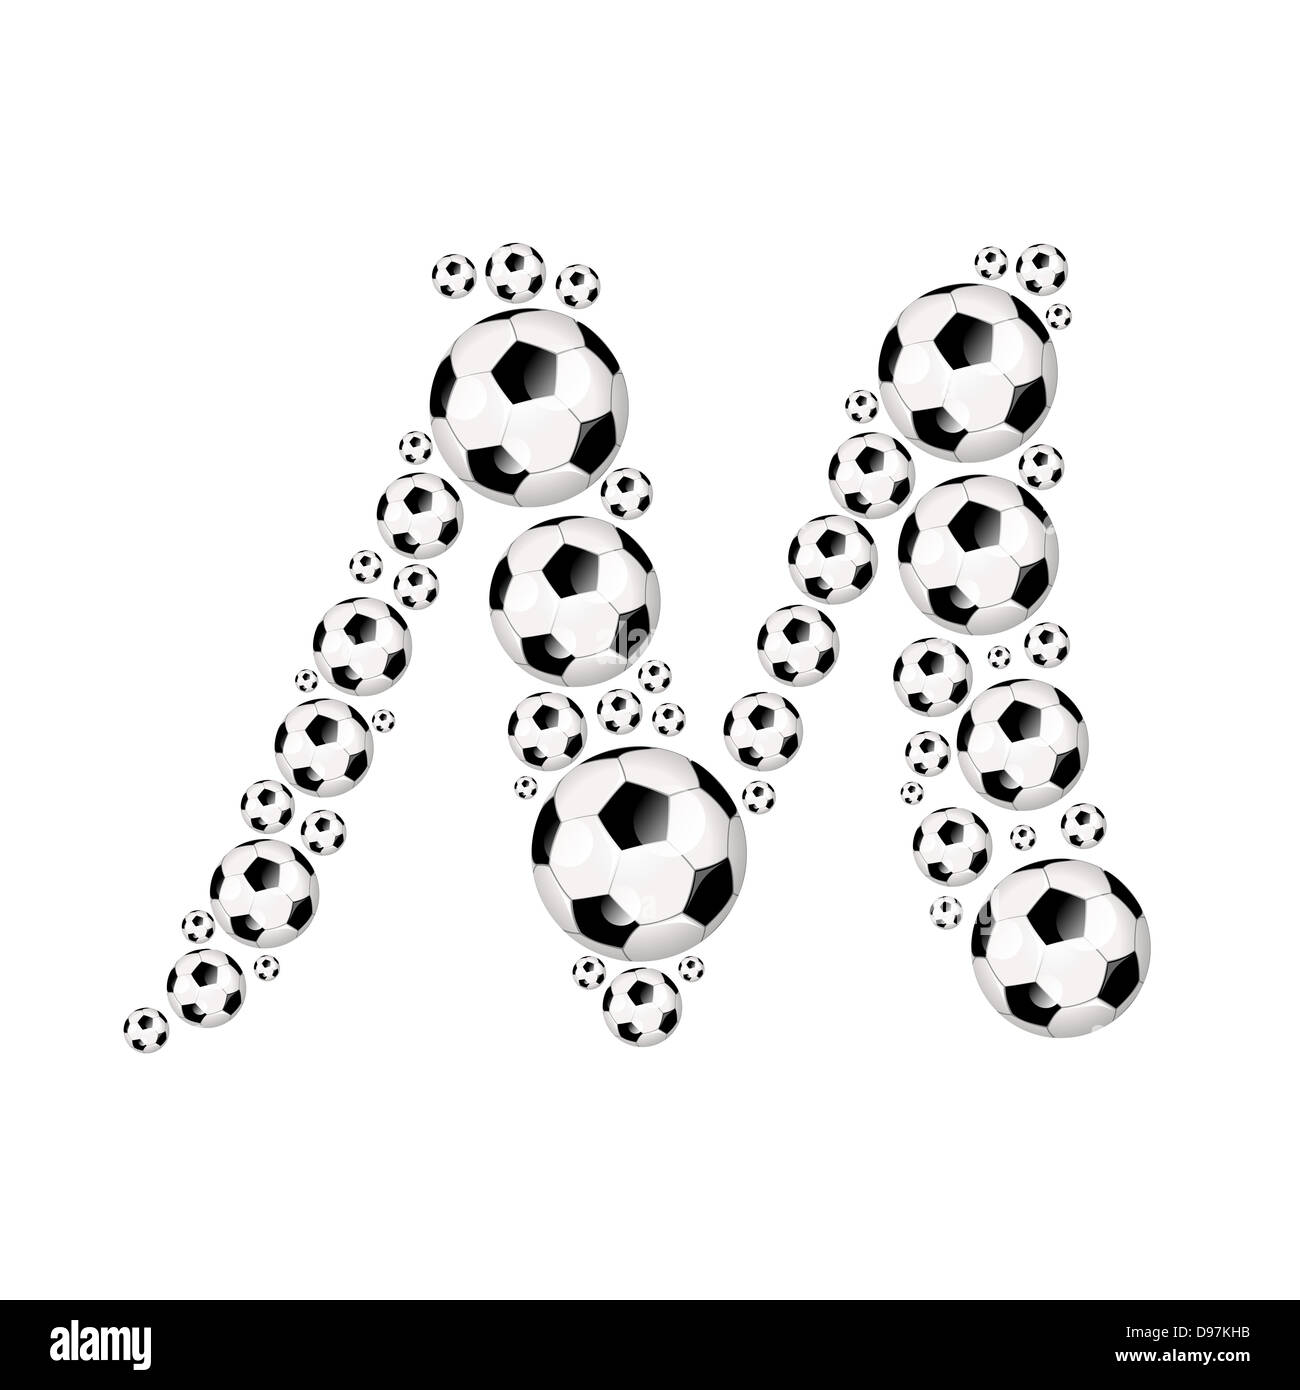 Soccer Alphabet Capital Letter M Illustration Icon With Or Footballs